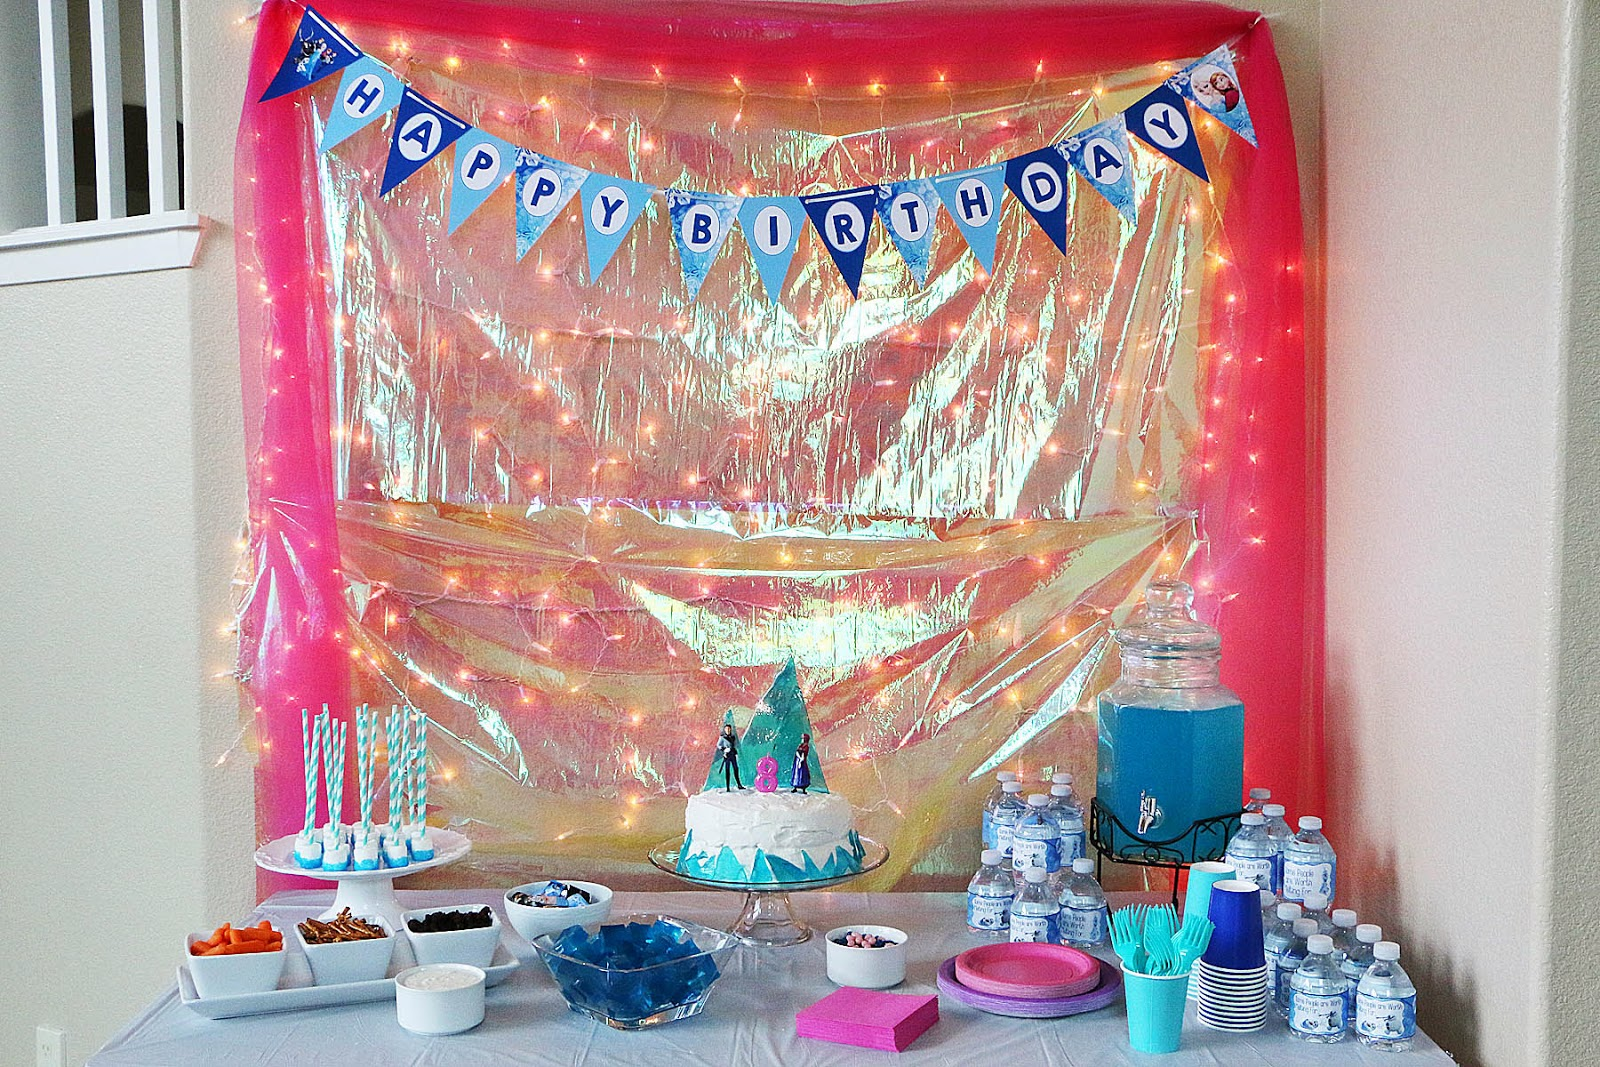 Frozen Birthday Cake Walmart The happy birthday sign was